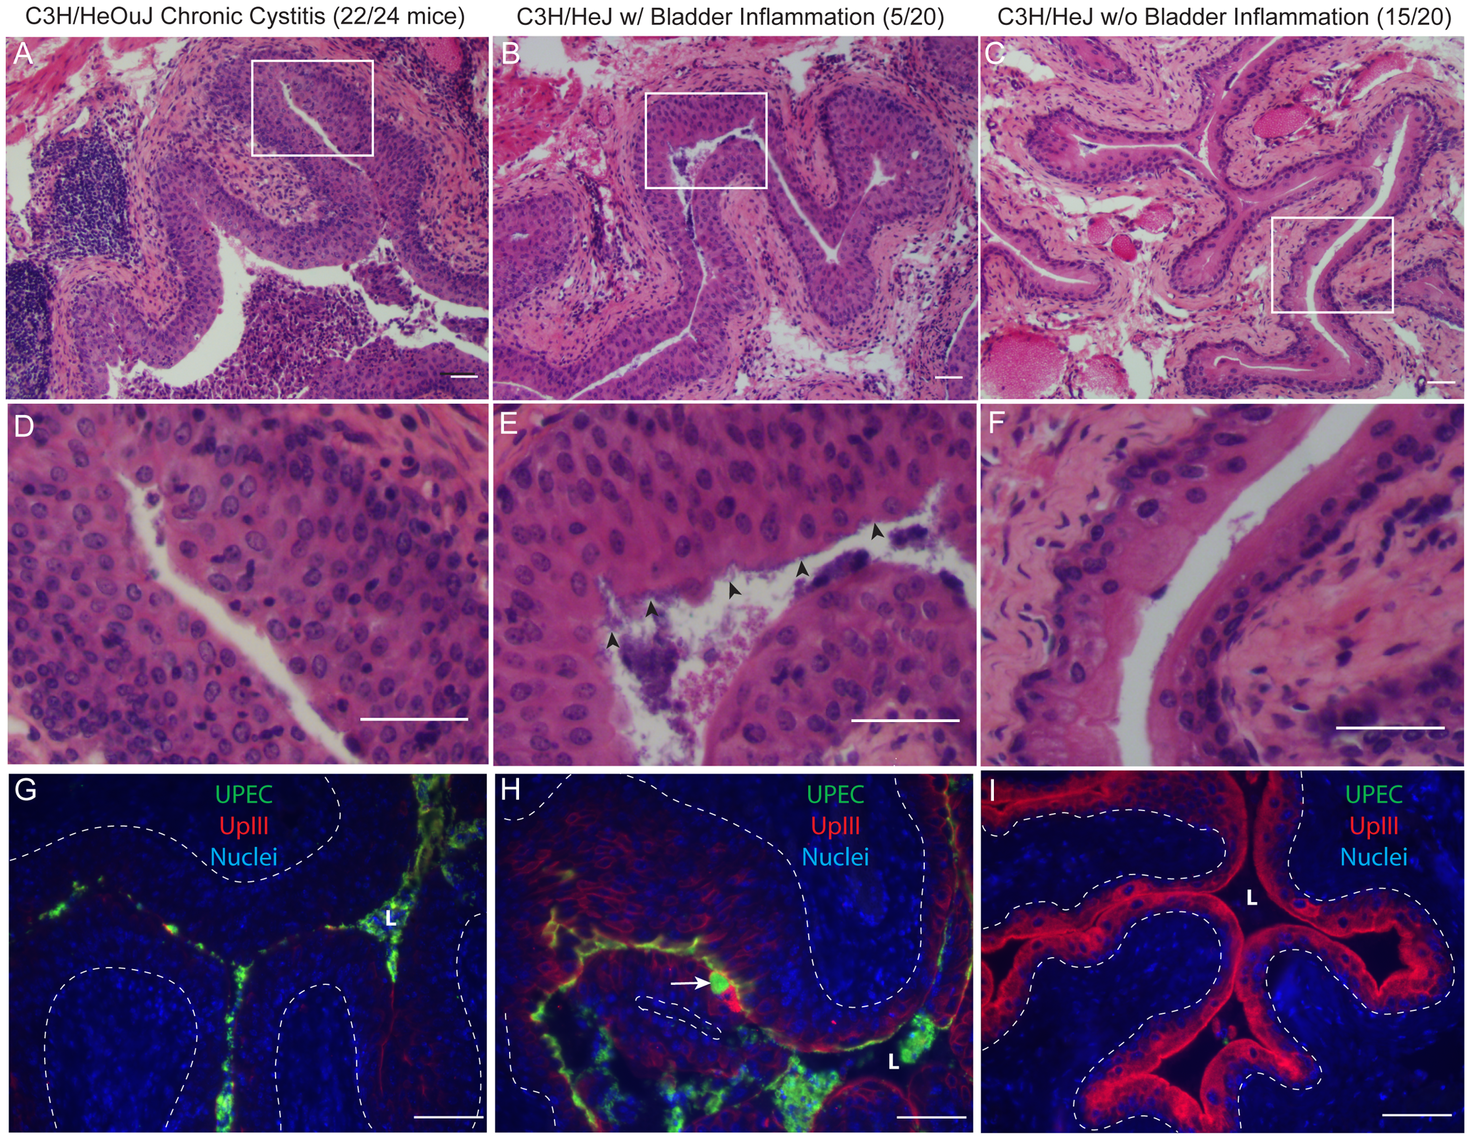 Chronic bladder infection in C3H/HeJ mice is histologically distinct from chronic cystitis in C3H/HeOuJ mice.